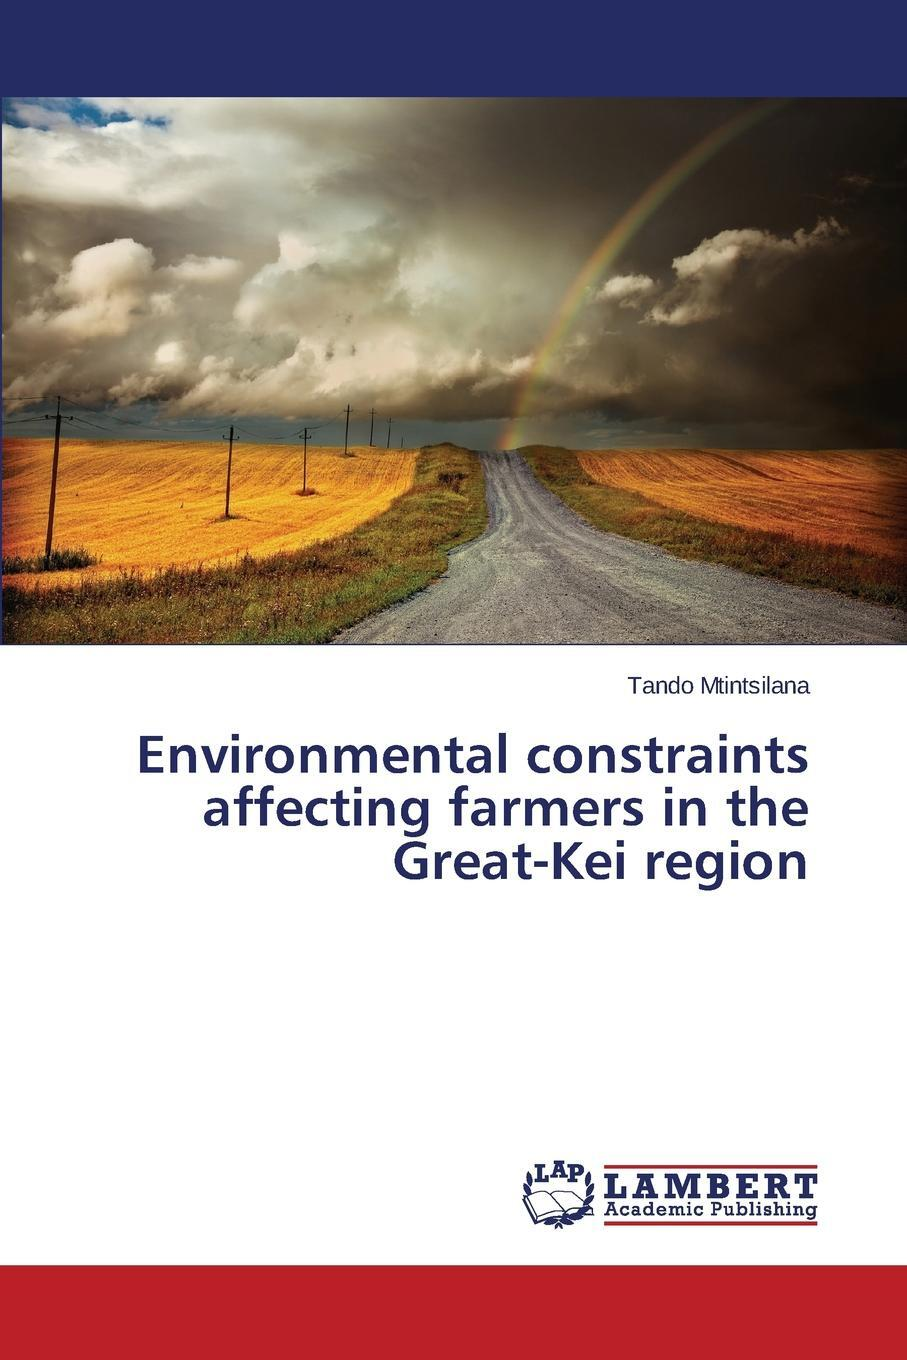 Environmental constraints affecting farmers in the Great-Kei region